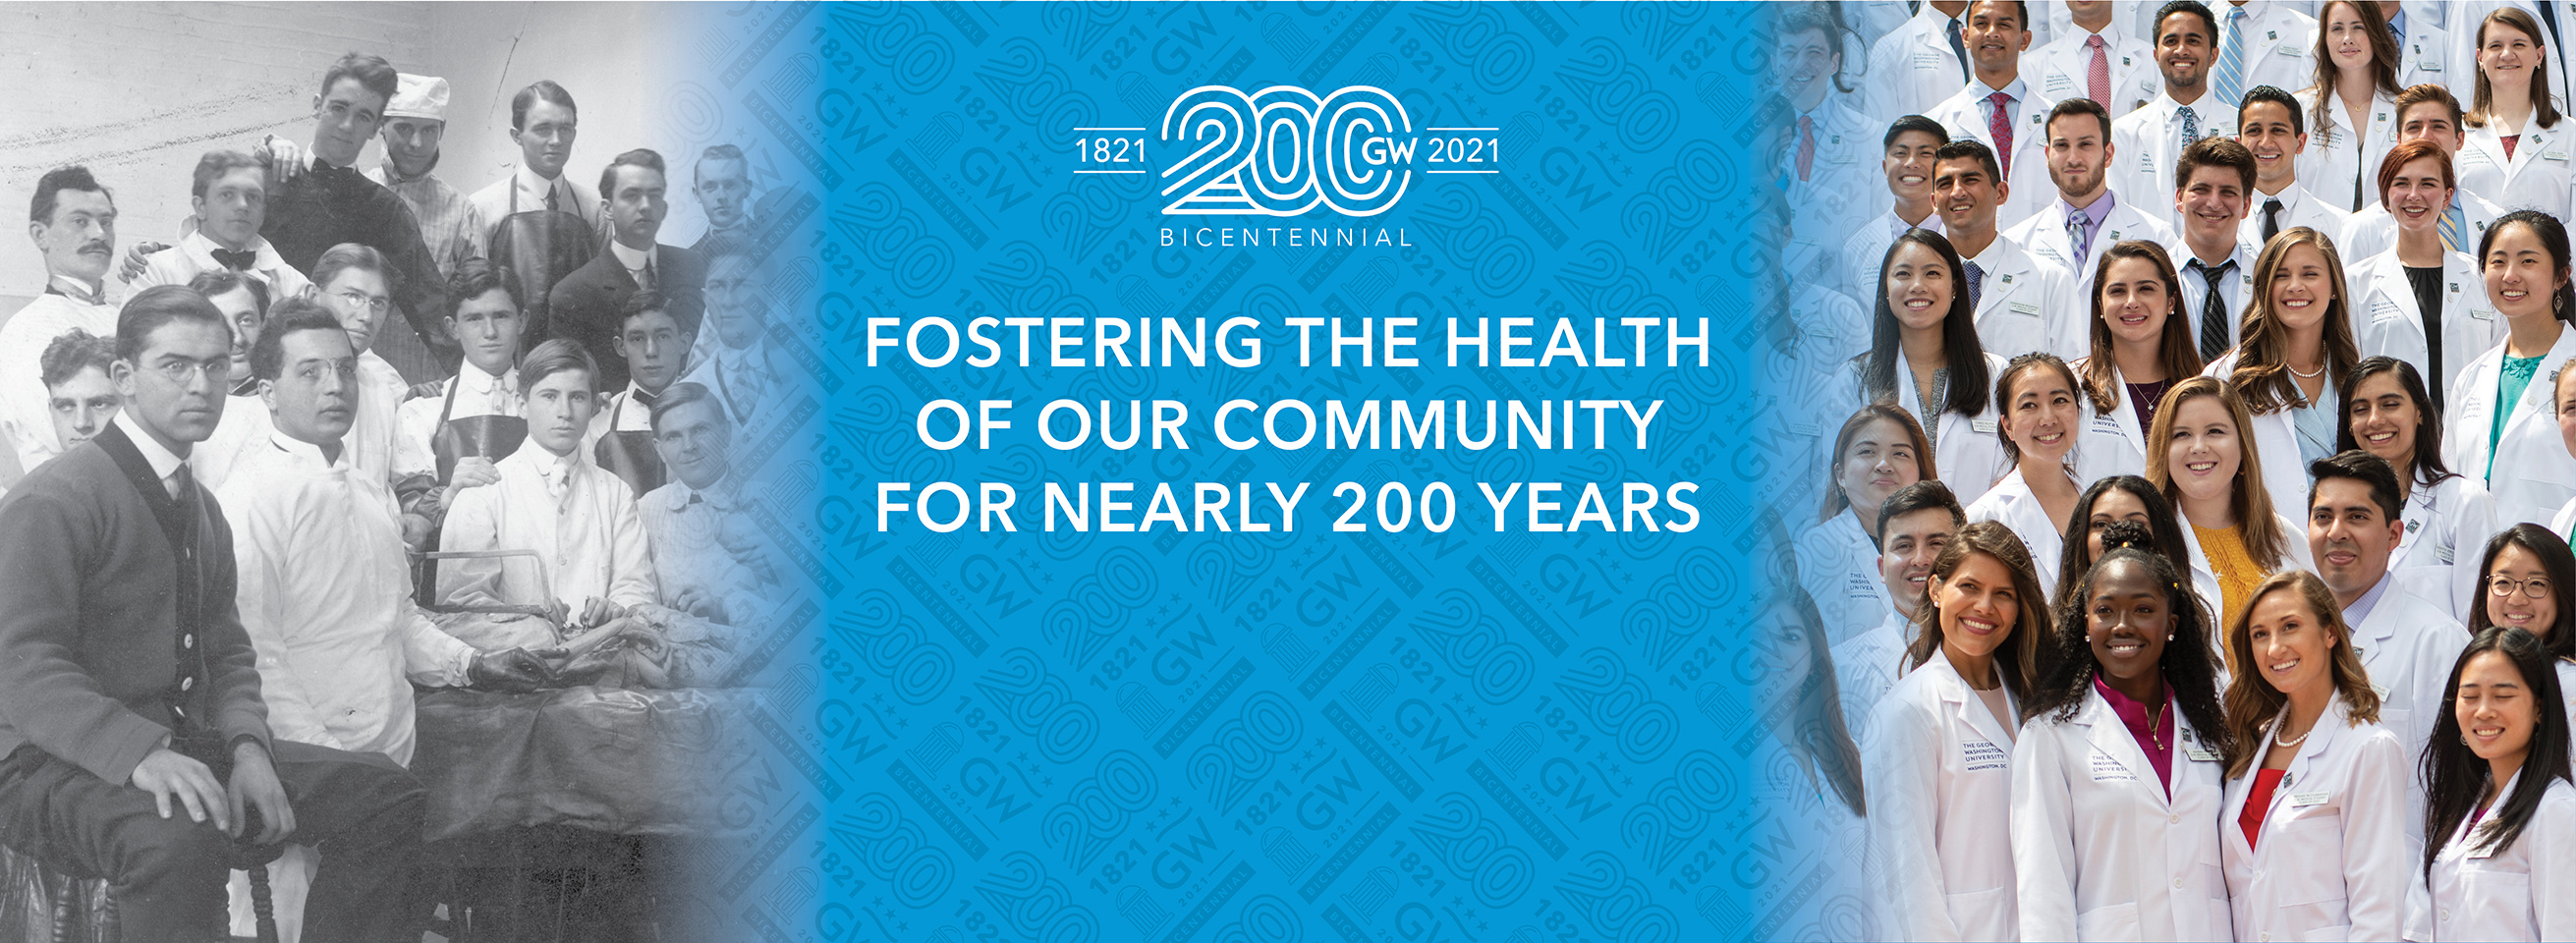 GW's Bicentennial Celebration Banner Fostering the Health of our community for nearly 200 years